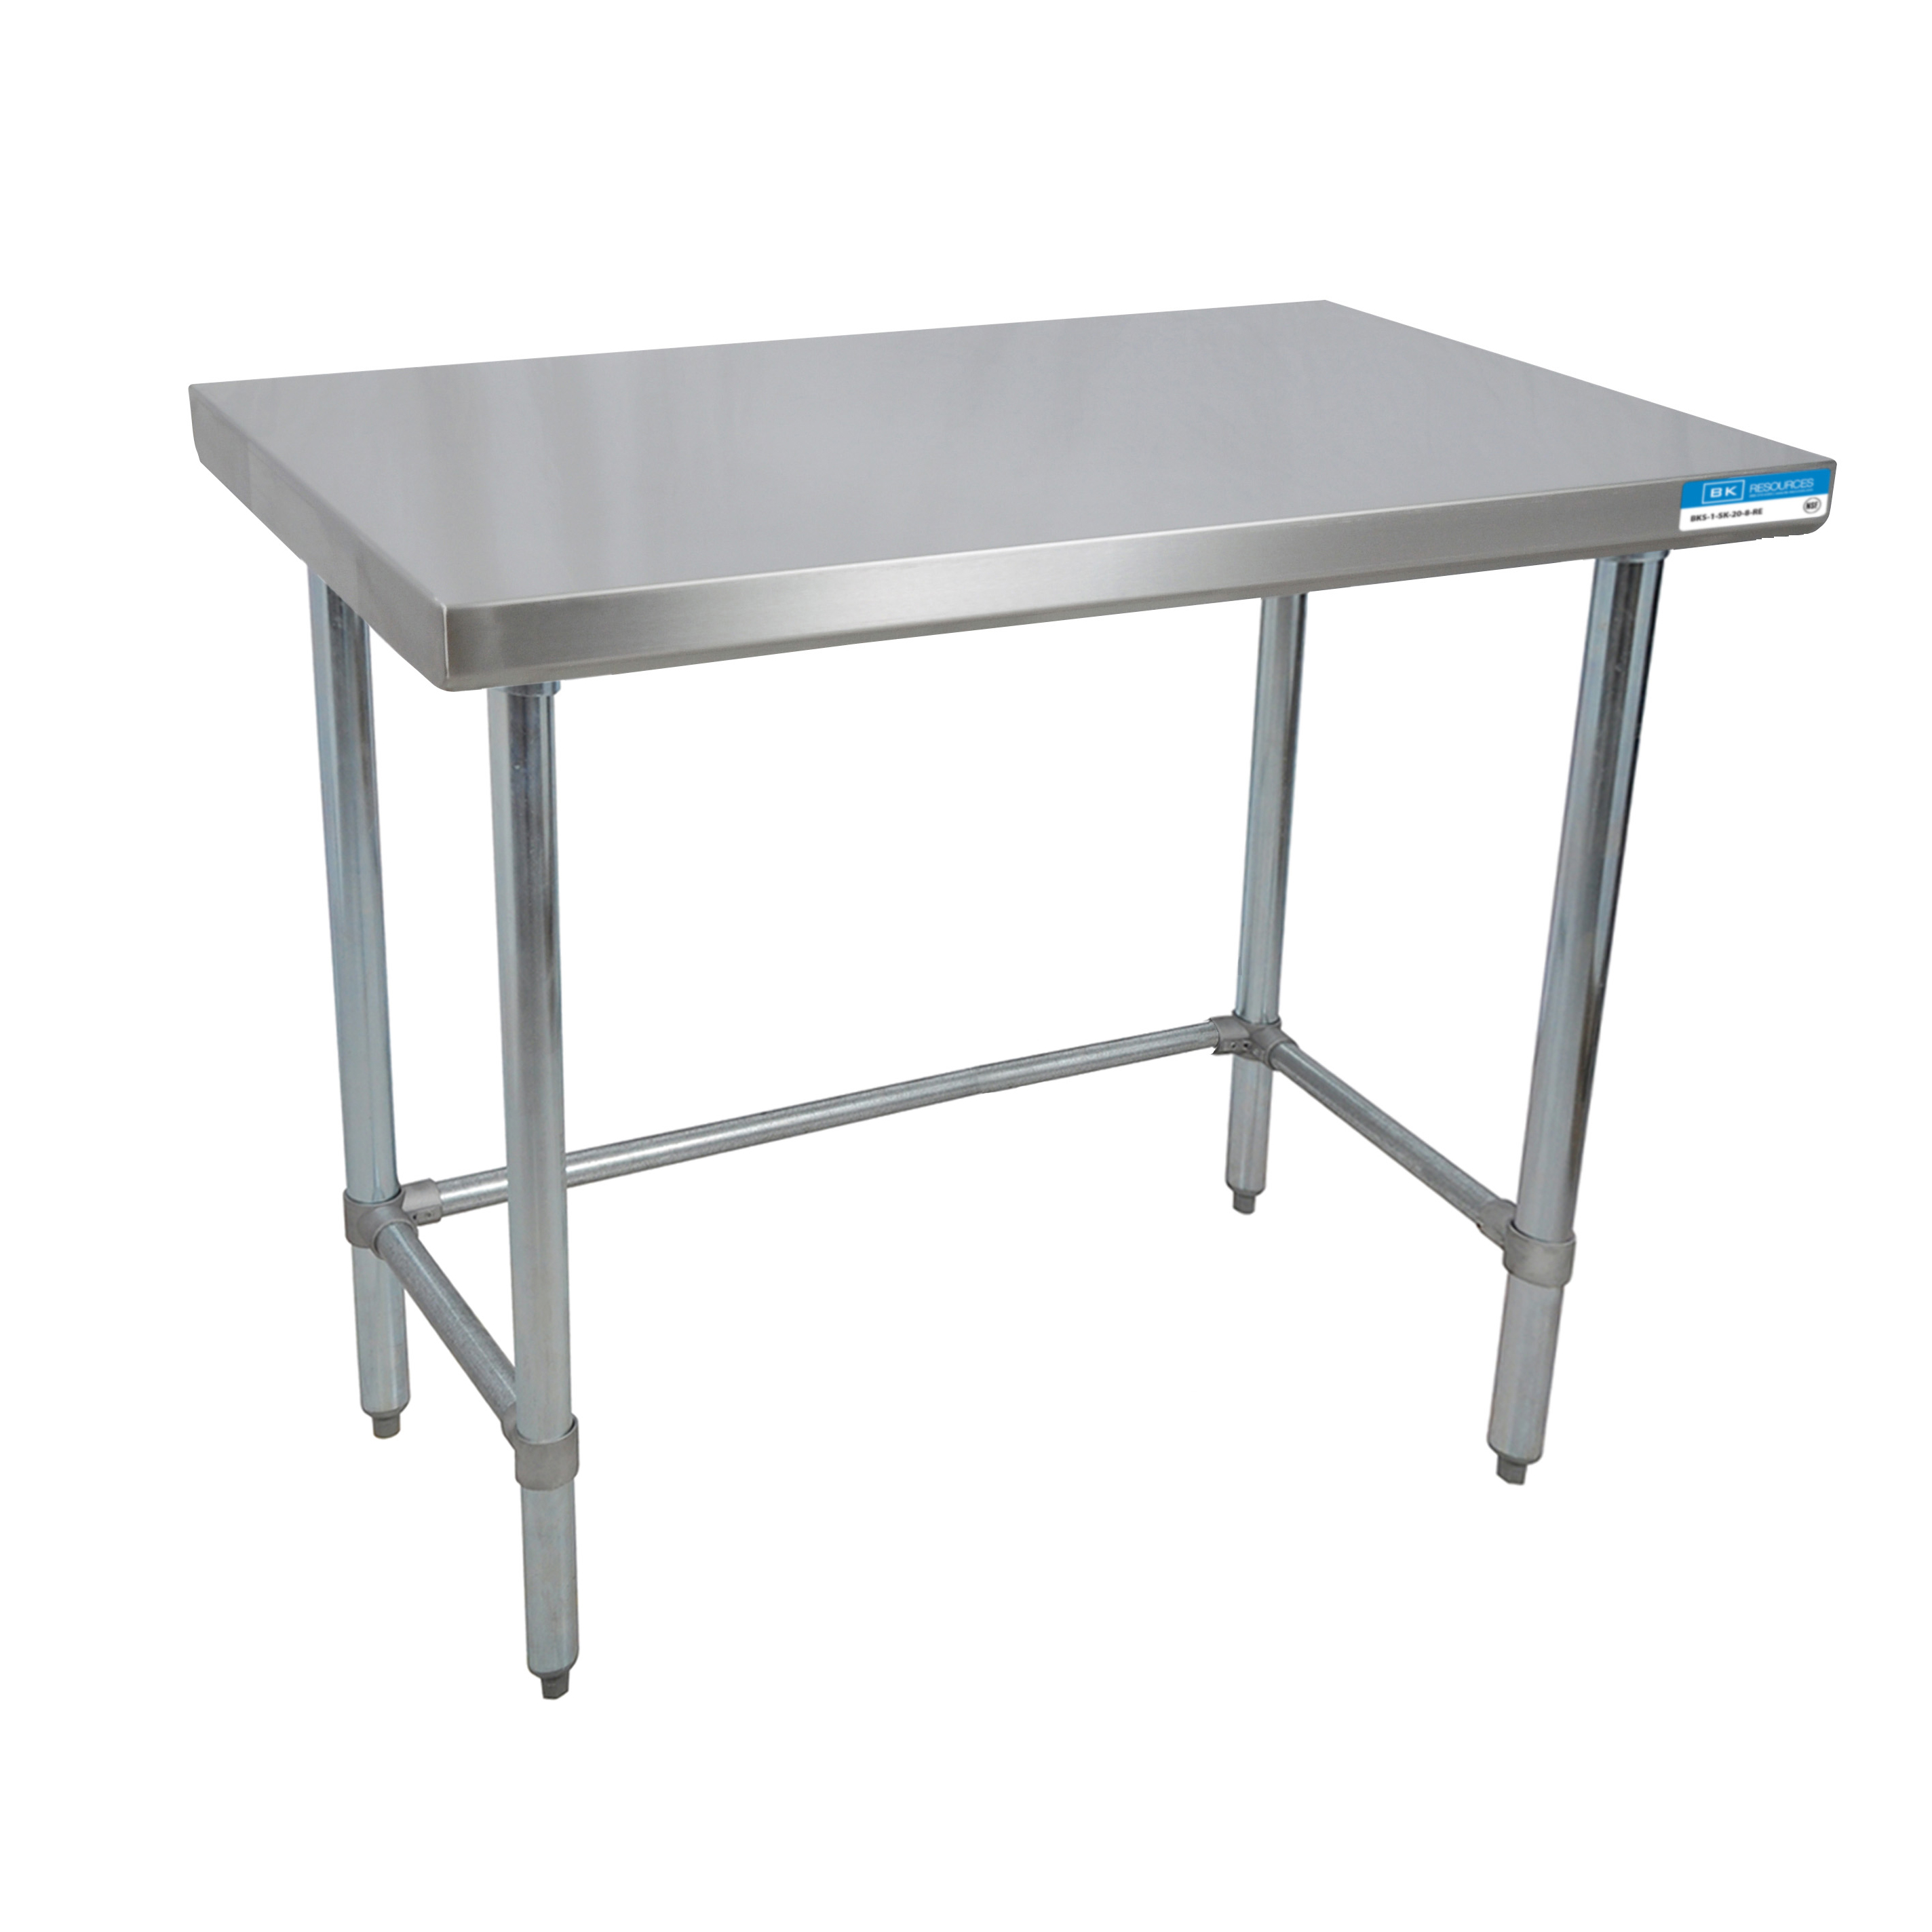 BK Resources CTTOB-3030 work table,  30